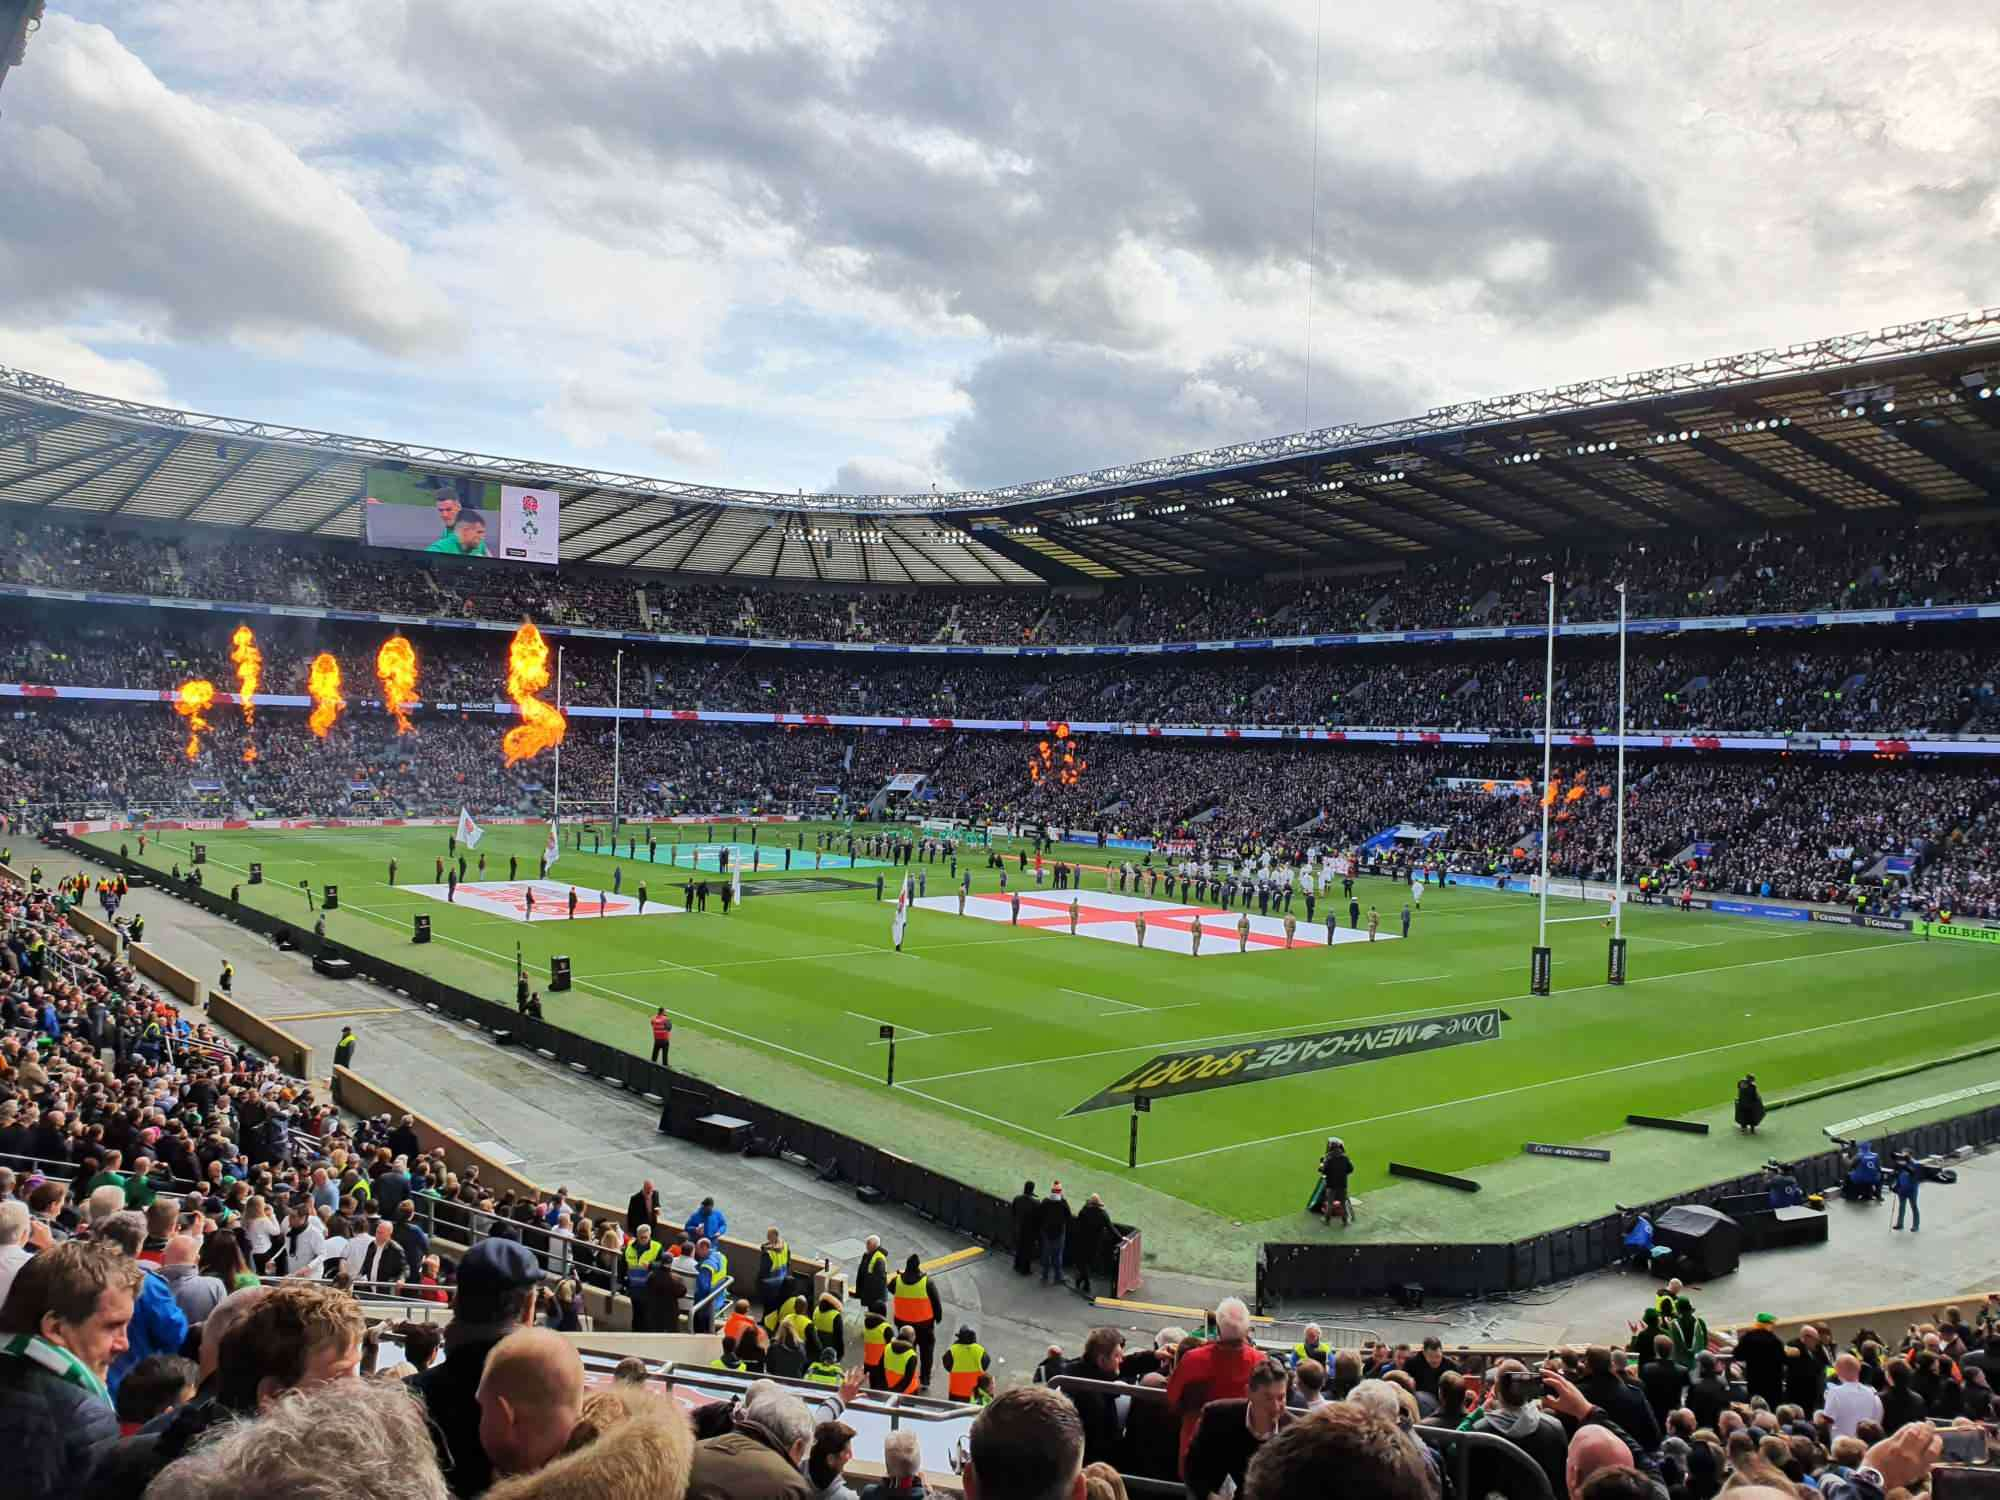 View from Seat Block L19 at Twickenham Stadium